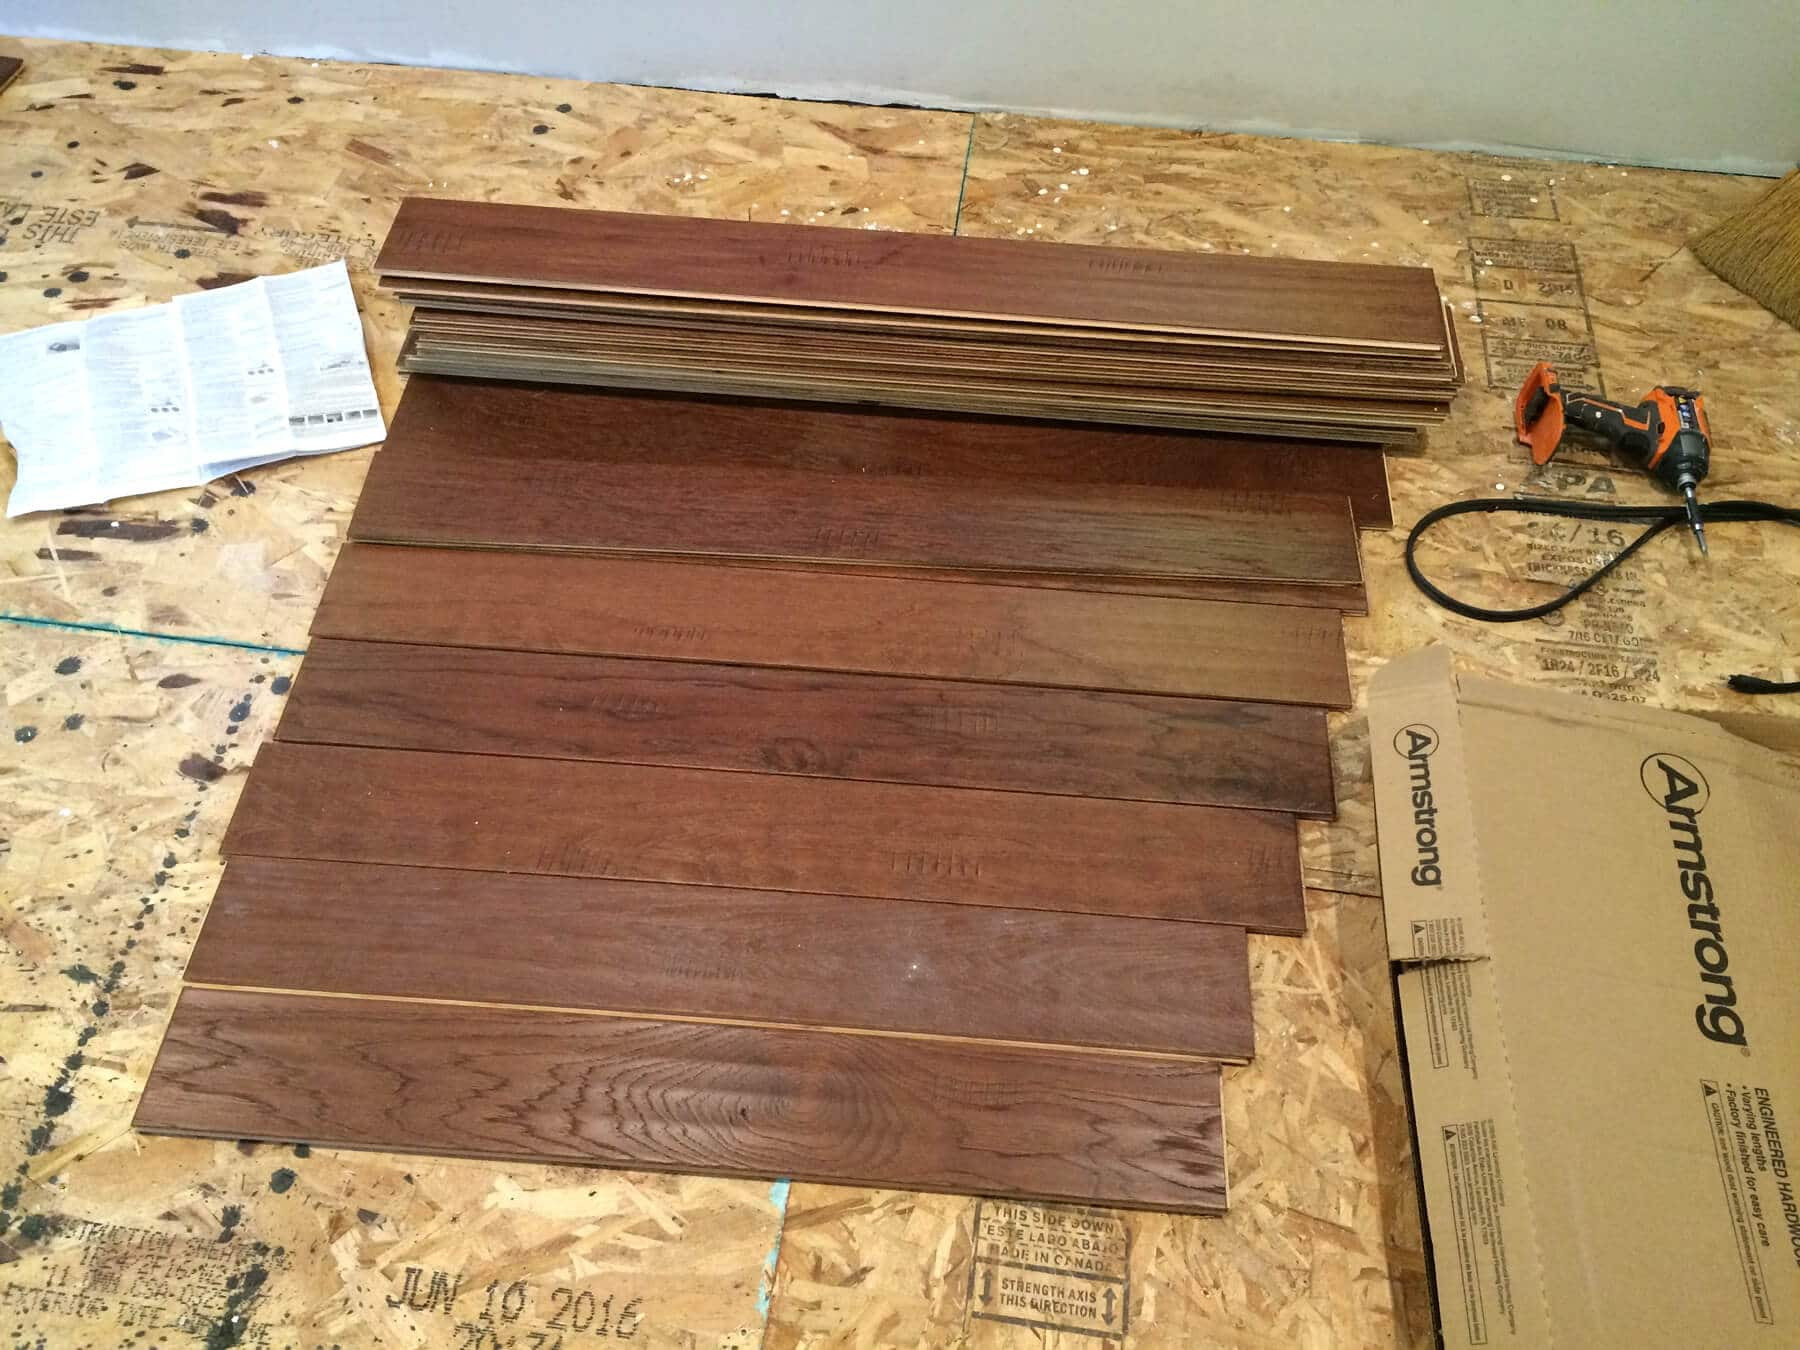 lowes canada hardwood flooring sale of the micro dwelling project part 5 flooring the daring gourmet with regard to laying down the sub flooring was fine but honestly the thought of installing hardwood floors seemed extremely intimidating we were pretty nervous going in